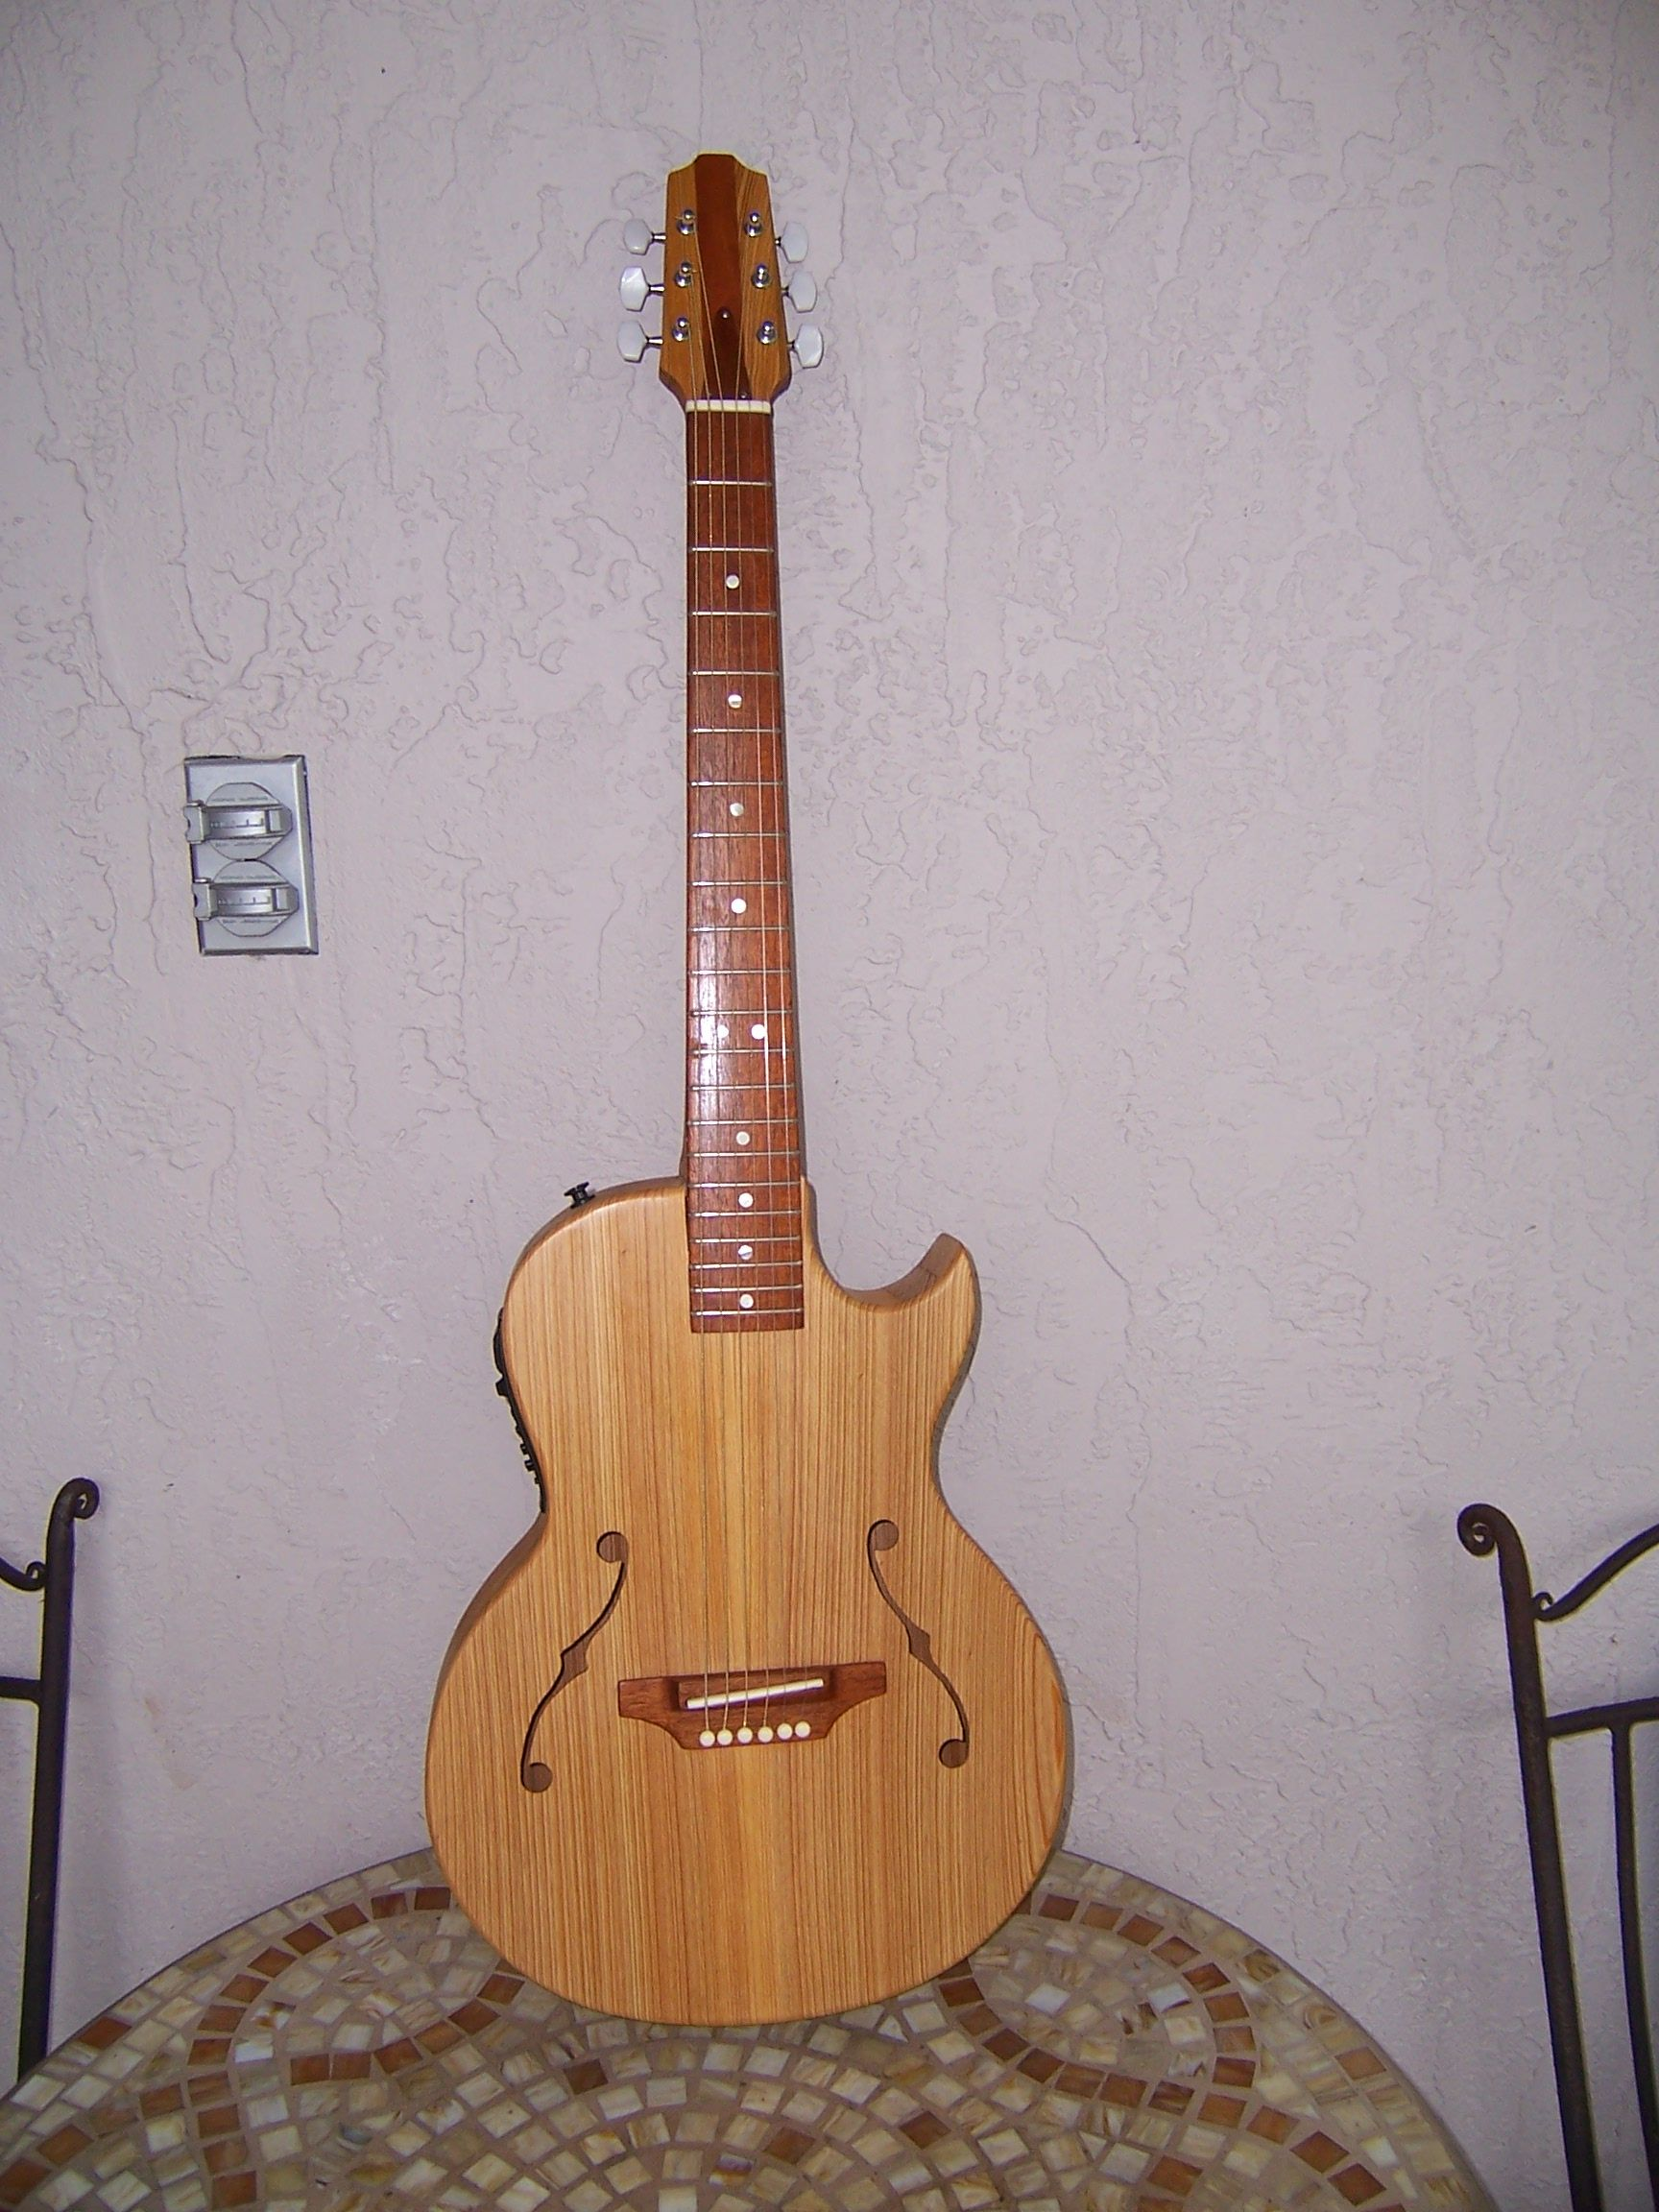 custom acoustic electric jazz hollow body guitar by g s monroe folk music. Black Bedroom Furniture Sets. Home Design Ideas